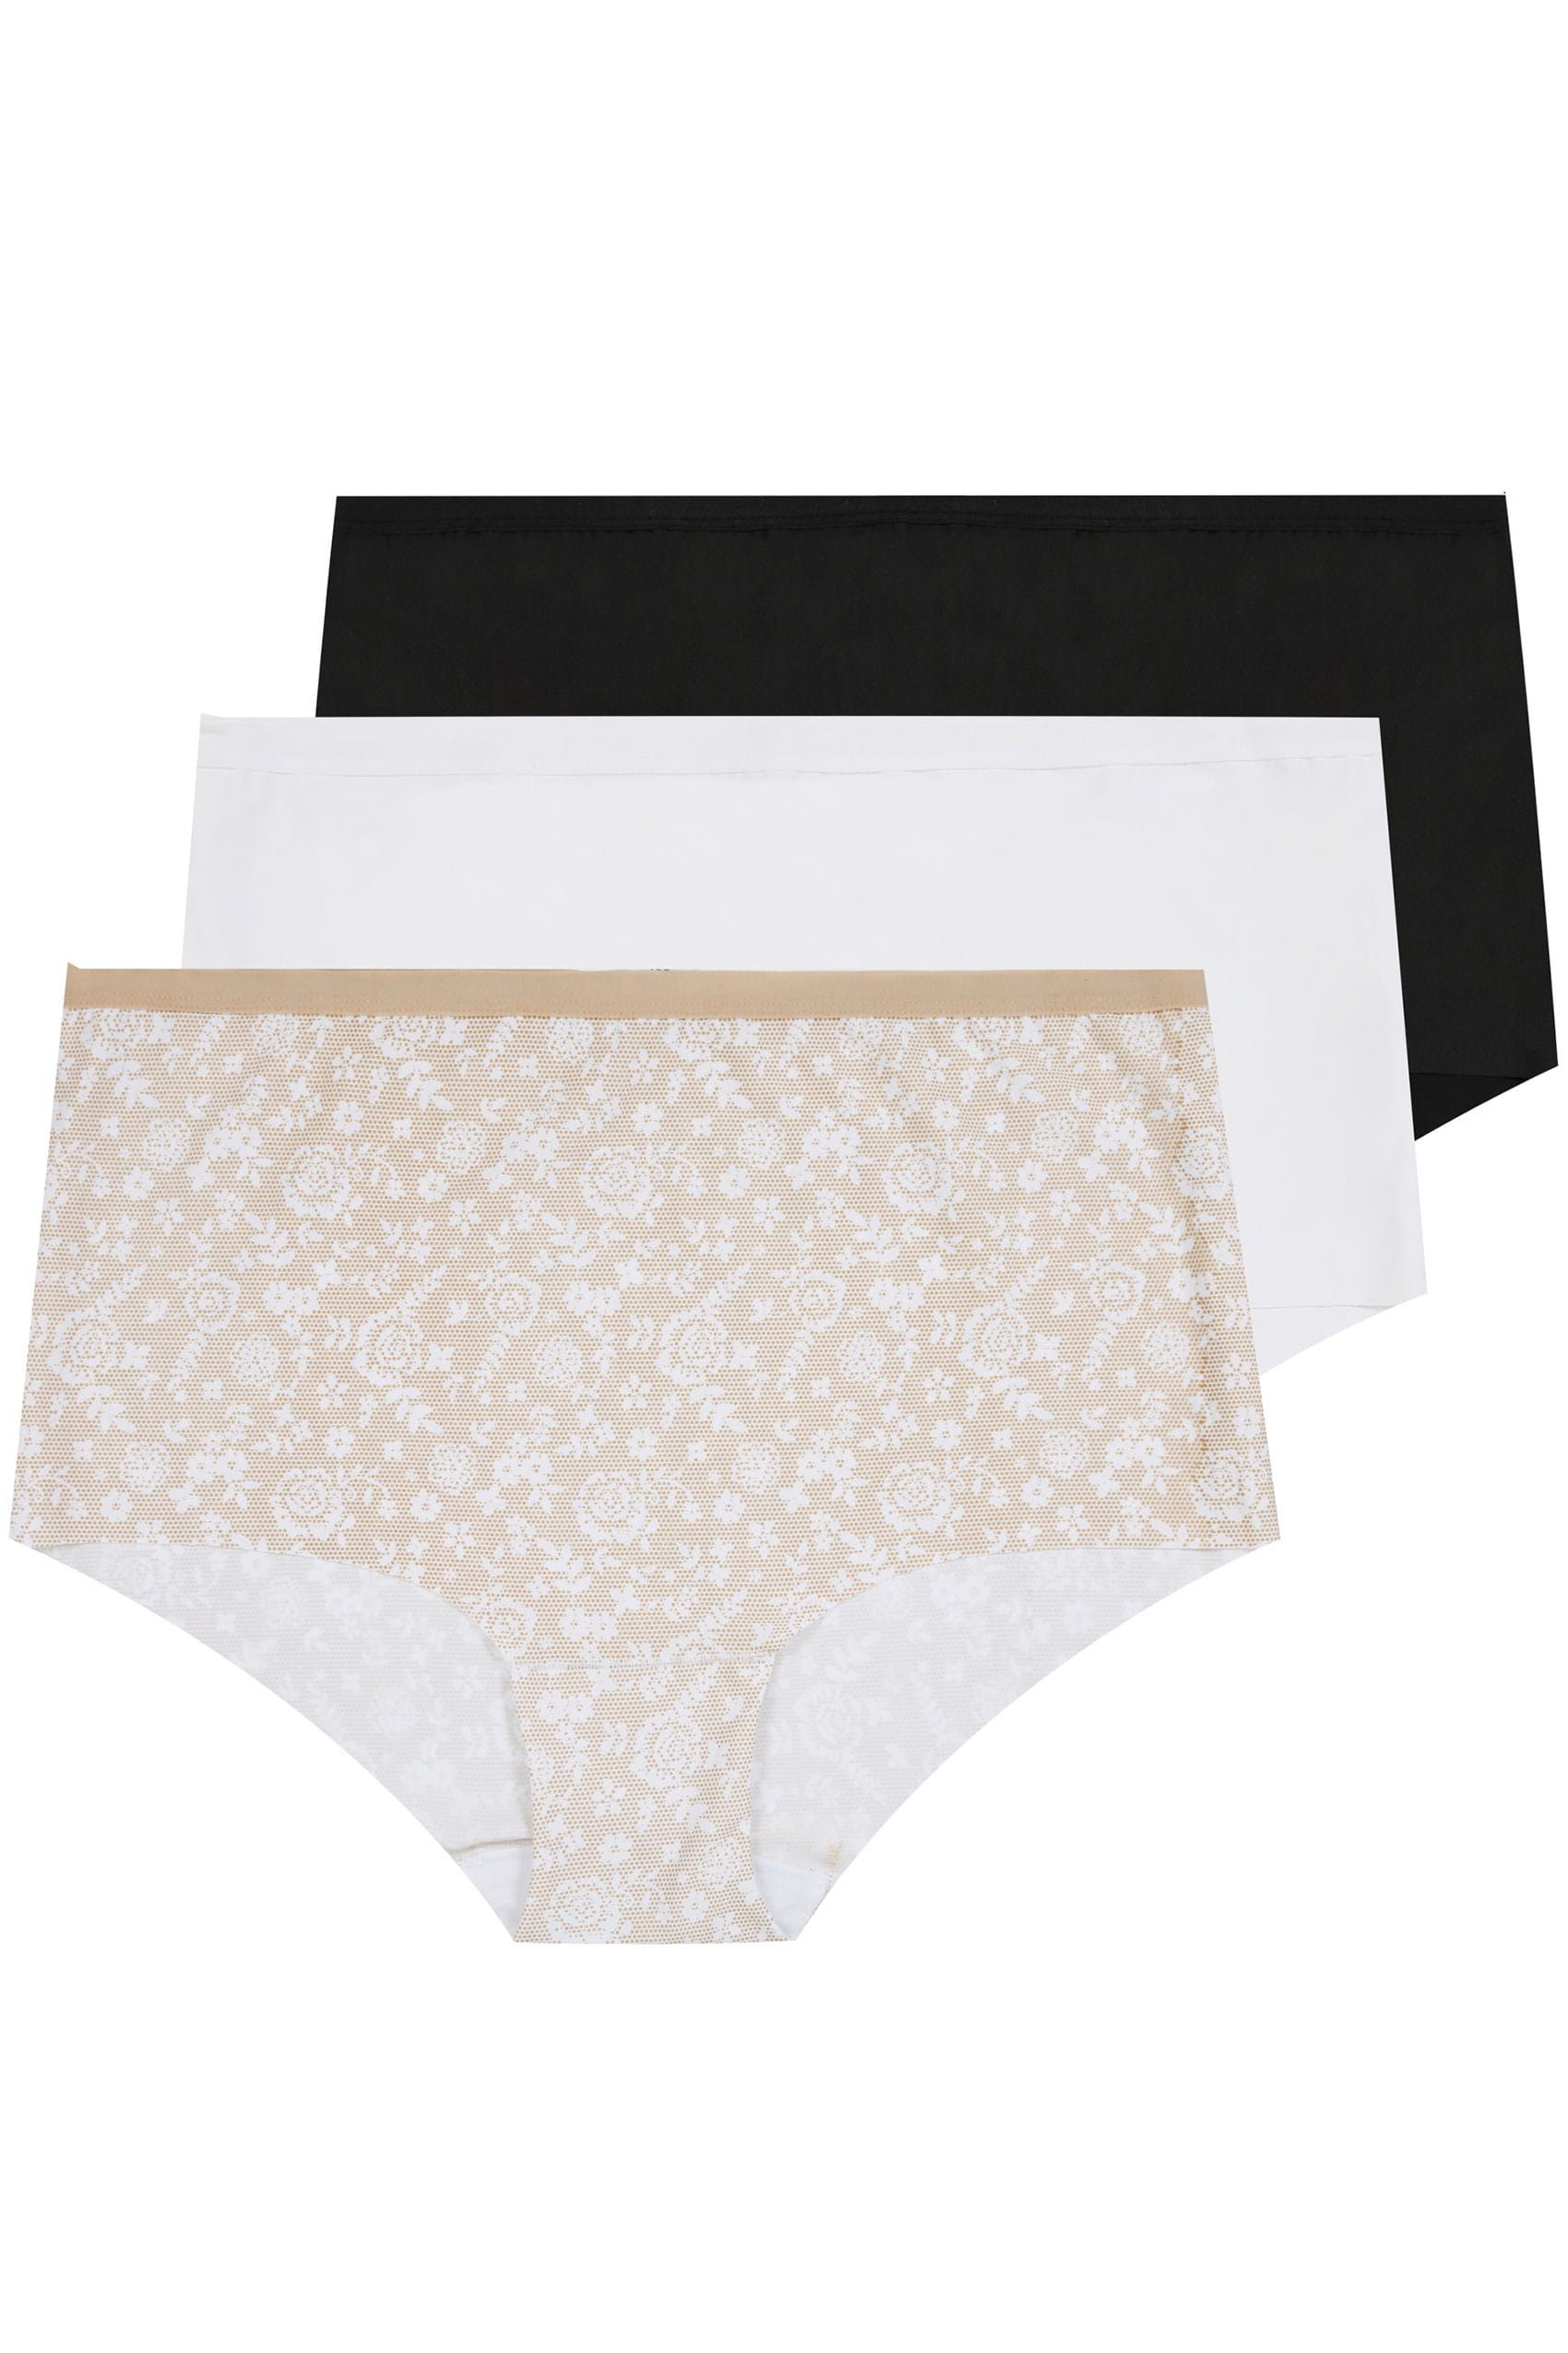 3 pack black white nude lace print no vpl full briefs for Supermarket bag packing letter template